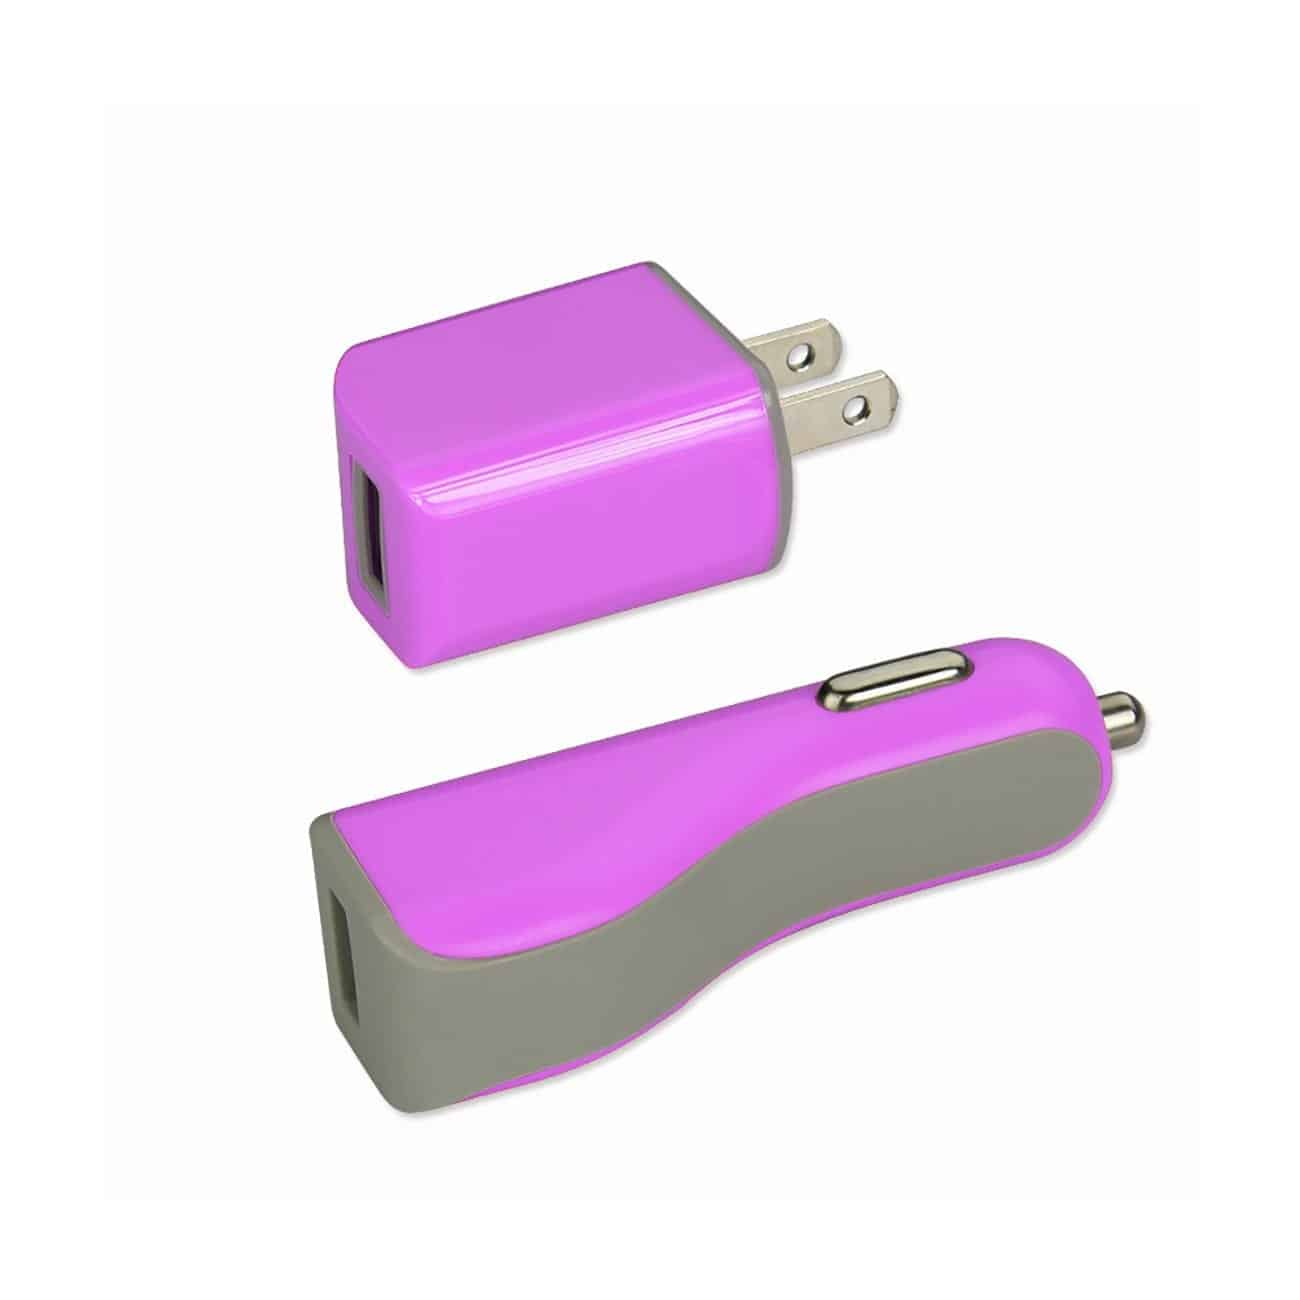 IPHONE SE/ 5S/ 5 1 AMP 3-IN-1 CAR CHARGER WALL ADAPTER WITH CABLE IN PURPLE